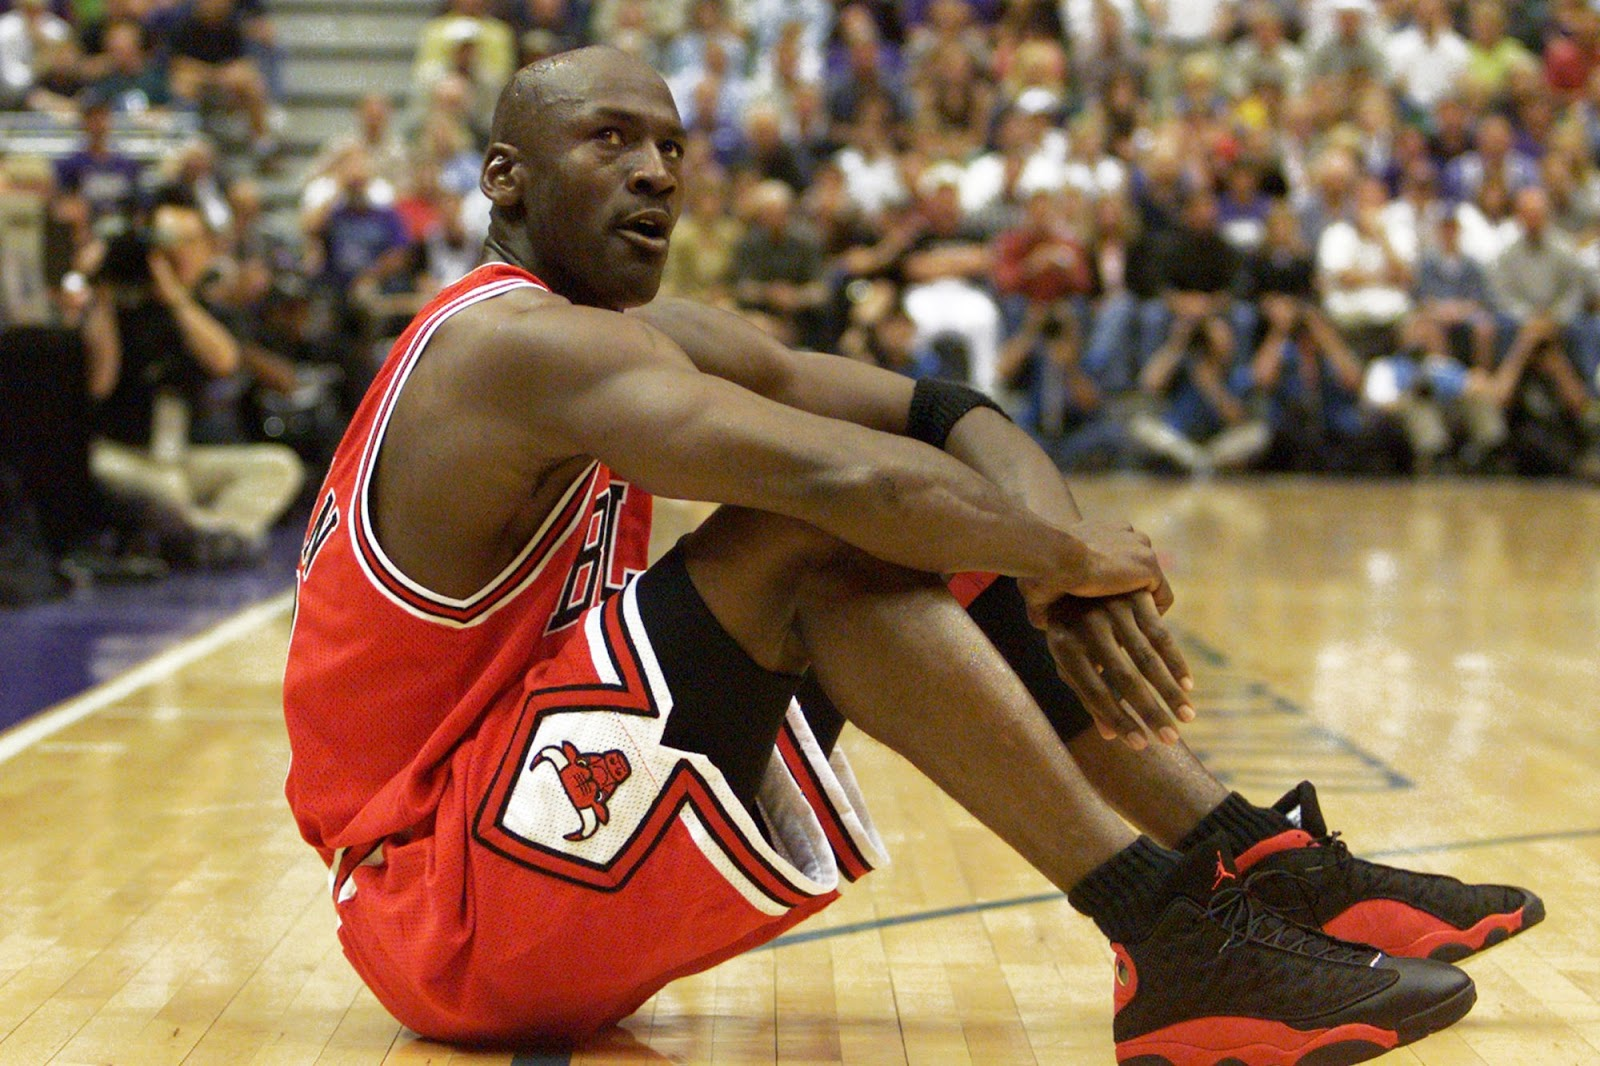 e06b64f70cc2 Michael Jordan is the greatest basketball player of all time and it s not  even close. I ve said this before and I ll gladly say this again and again  with no ...